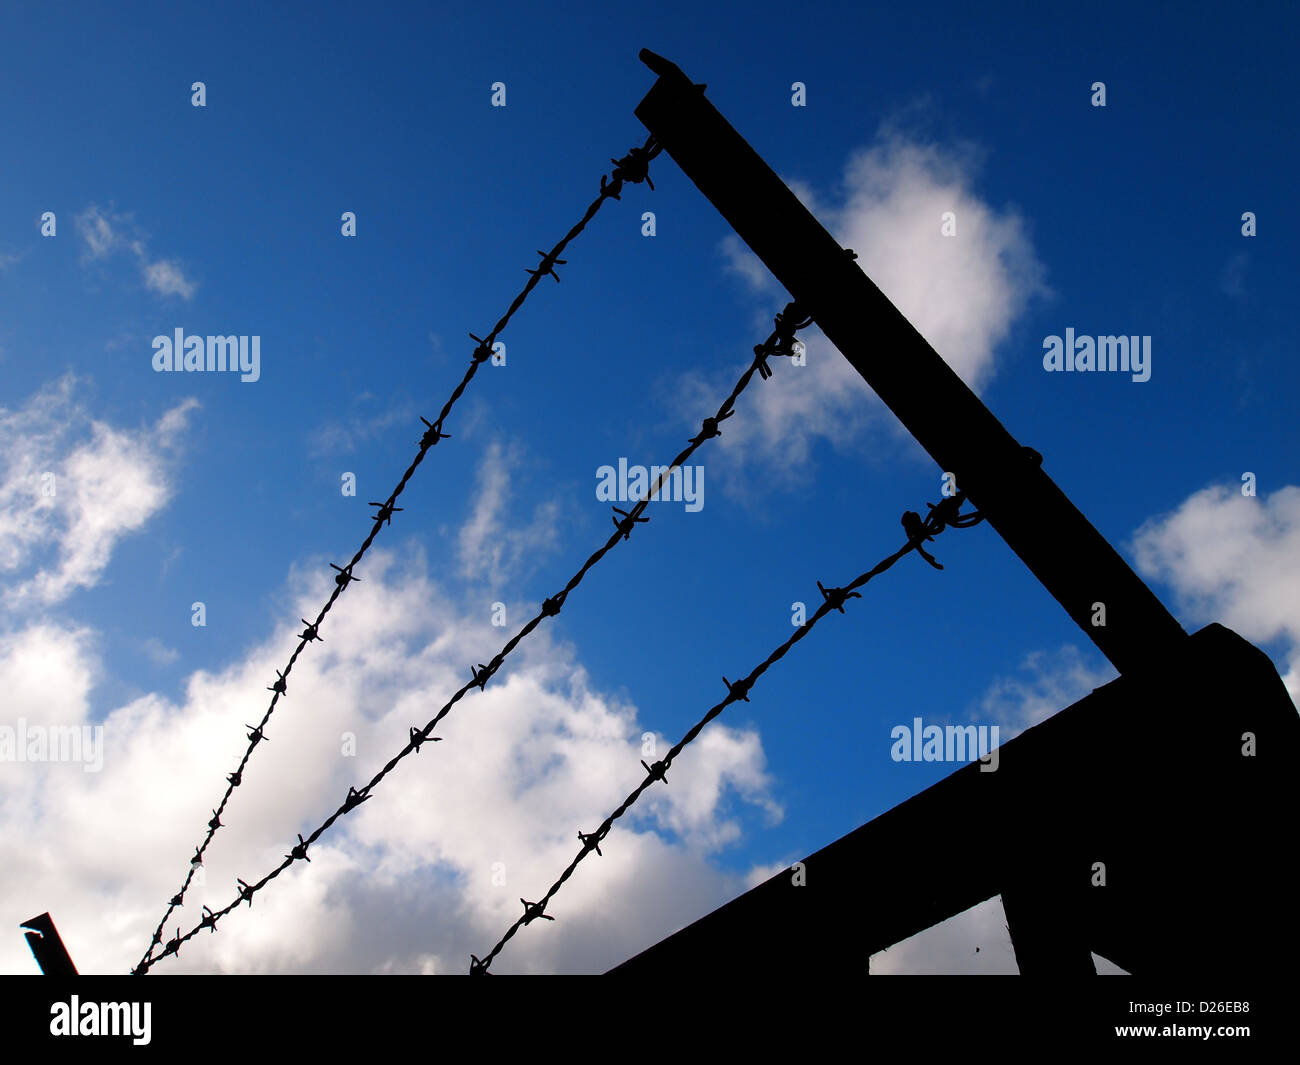 A barbed wire fence silhouetted against a blue sky. - Stock Image